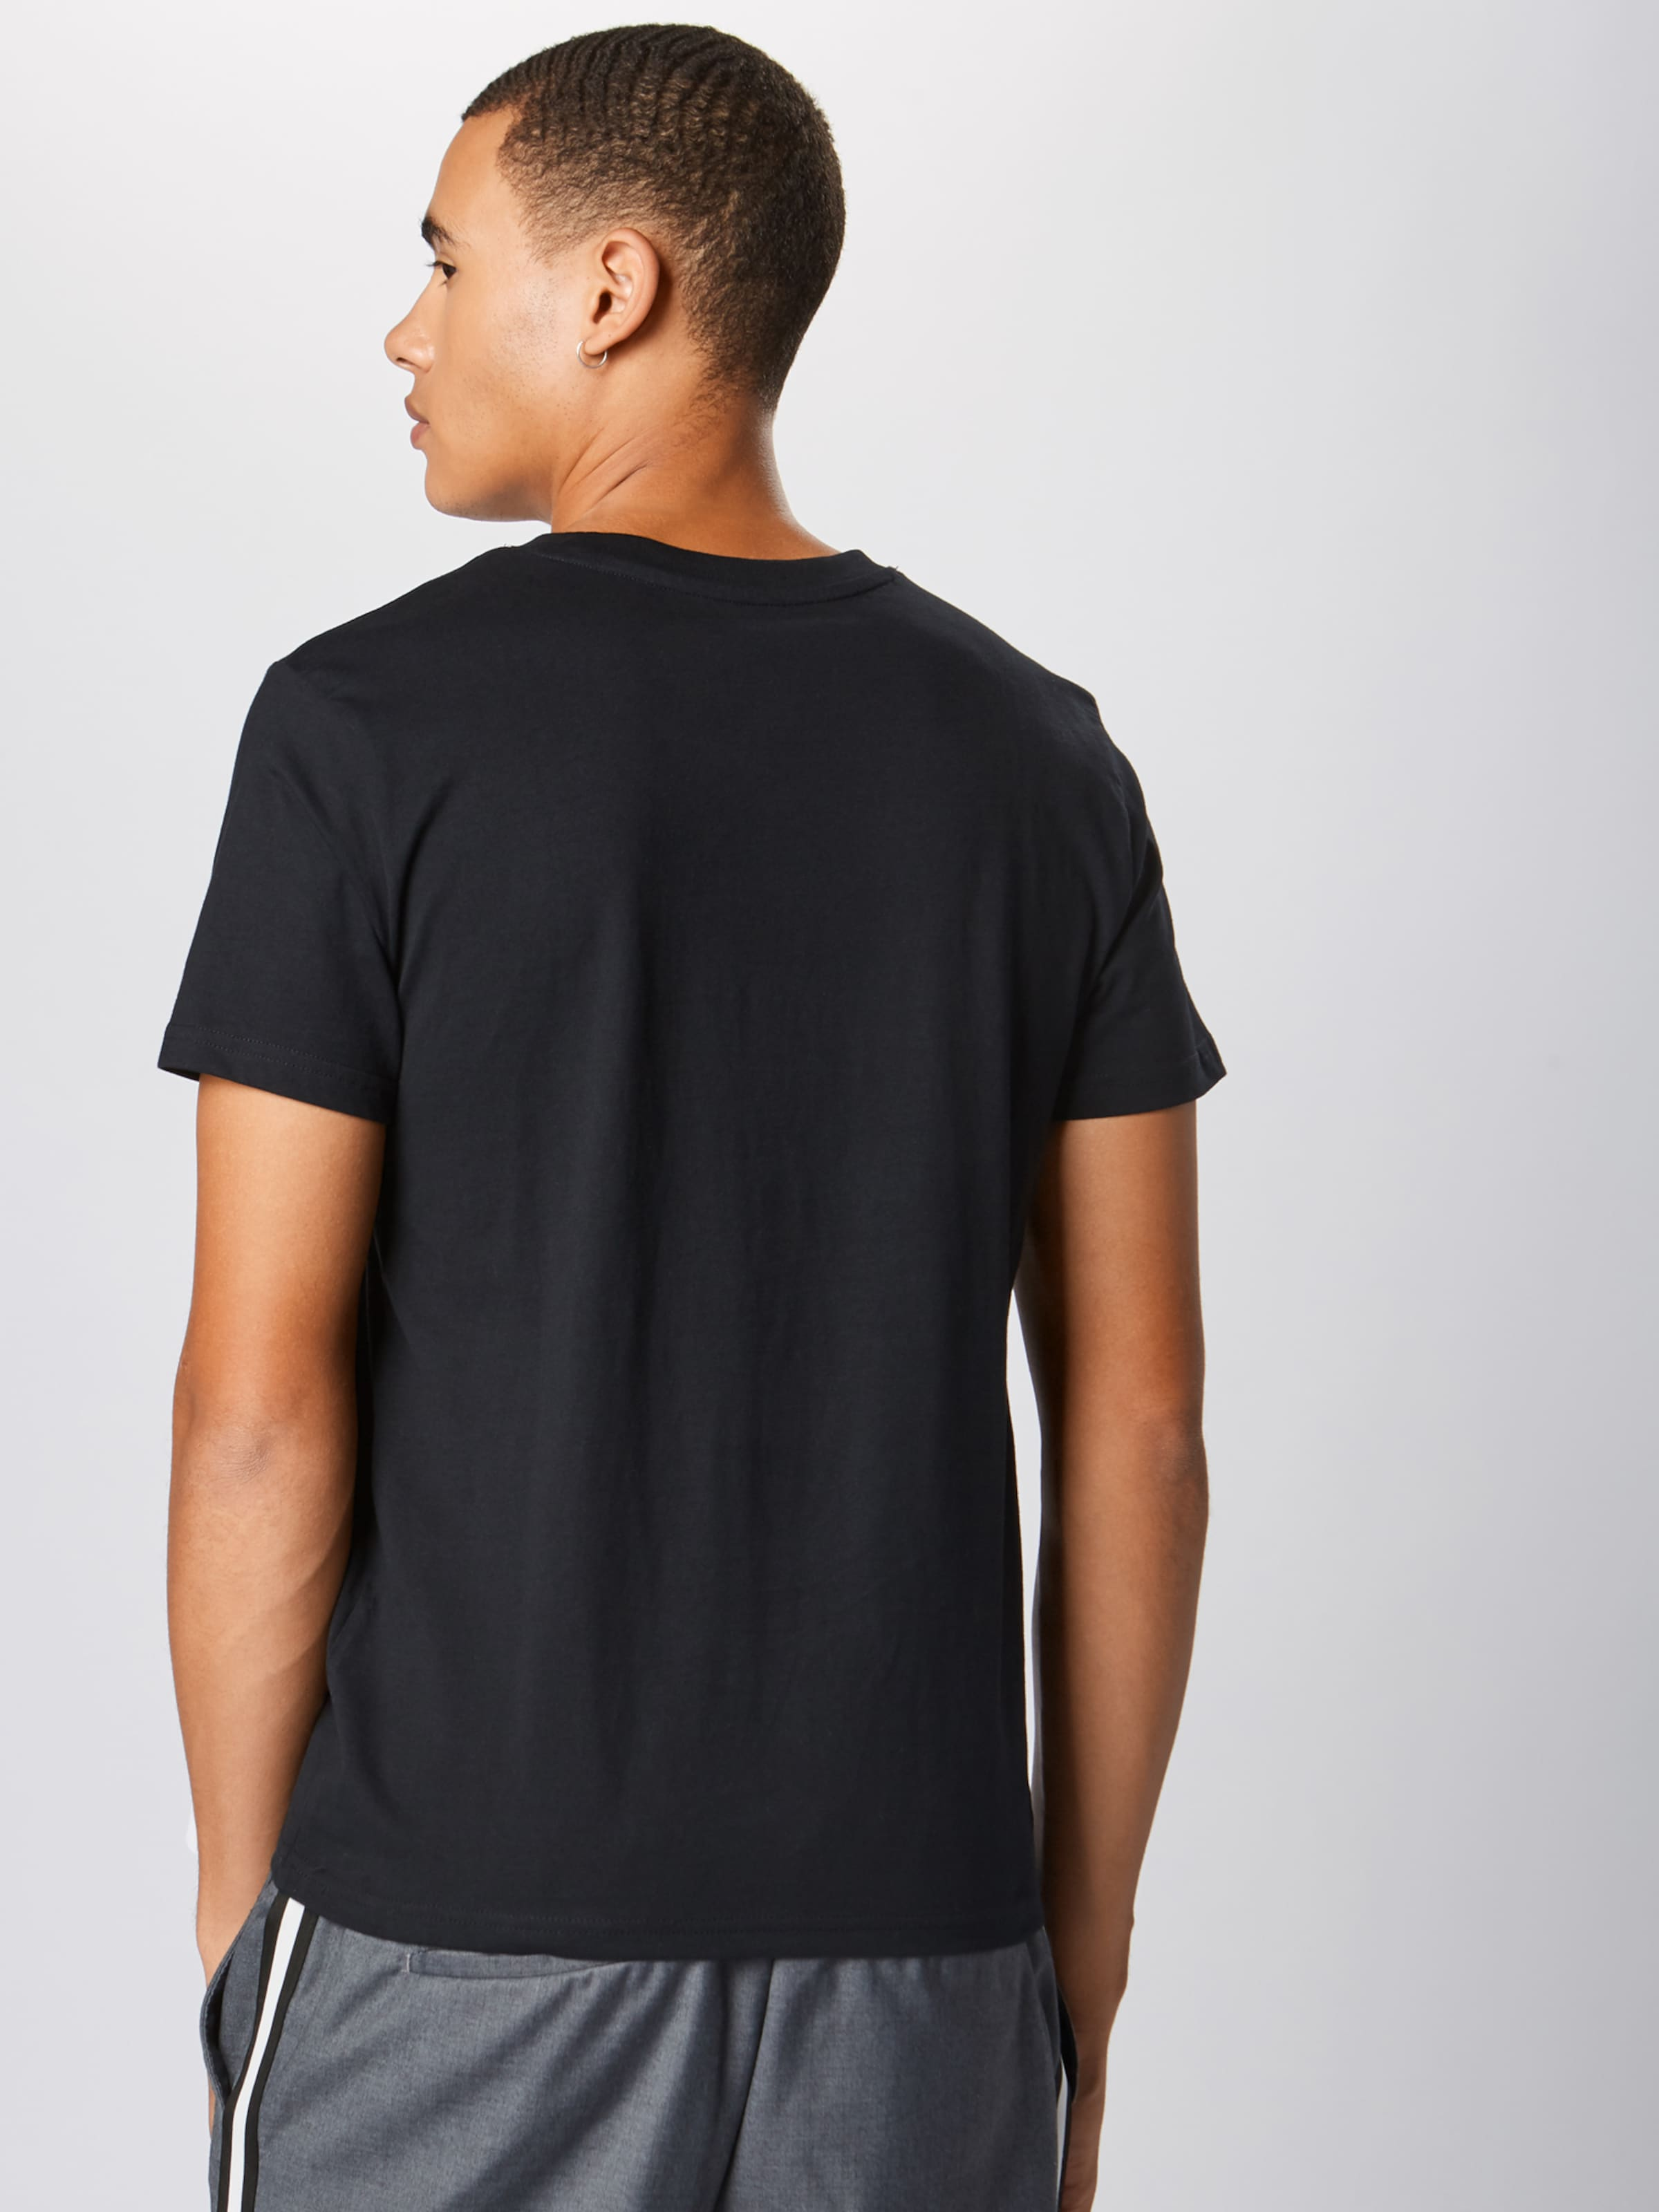 T shirt Review 'box' En Noir 8OnwPkN0X